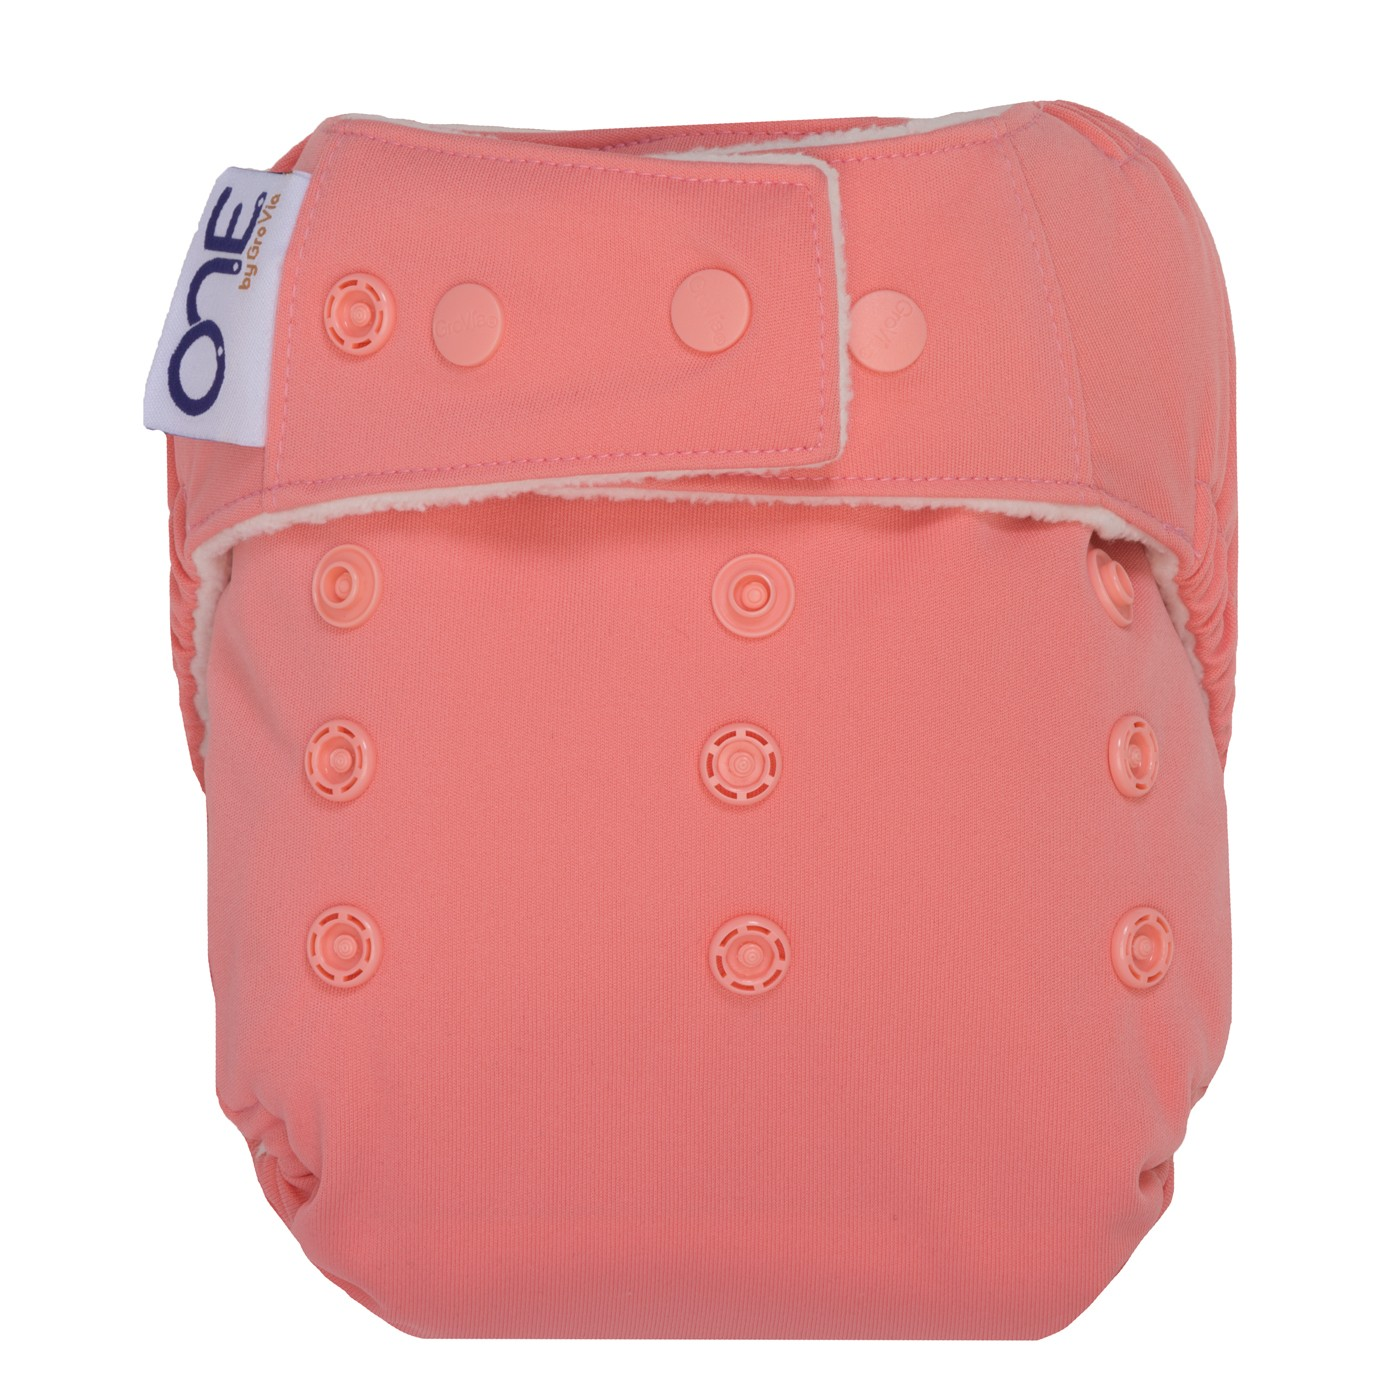 grovia one diaper - o.n.e diaper - Rose